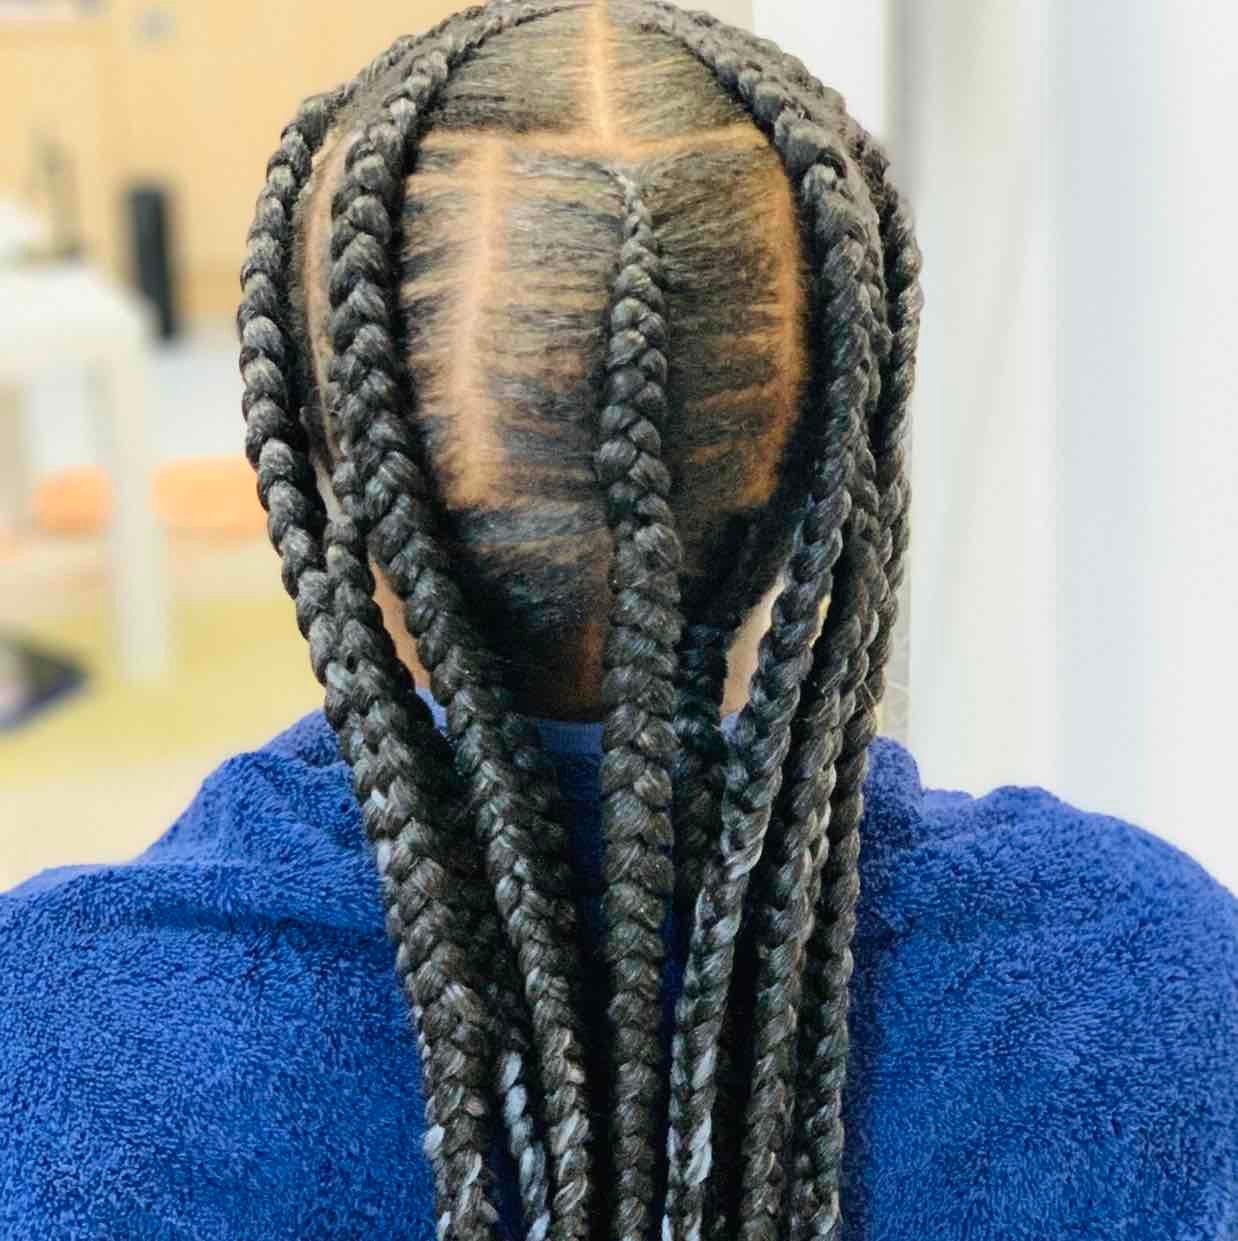 salon de coiffure afro tresse tresses box braids crochet braids vanilles tissages paris 75 77 78 91 92 93 94 95 NIZAZXRH